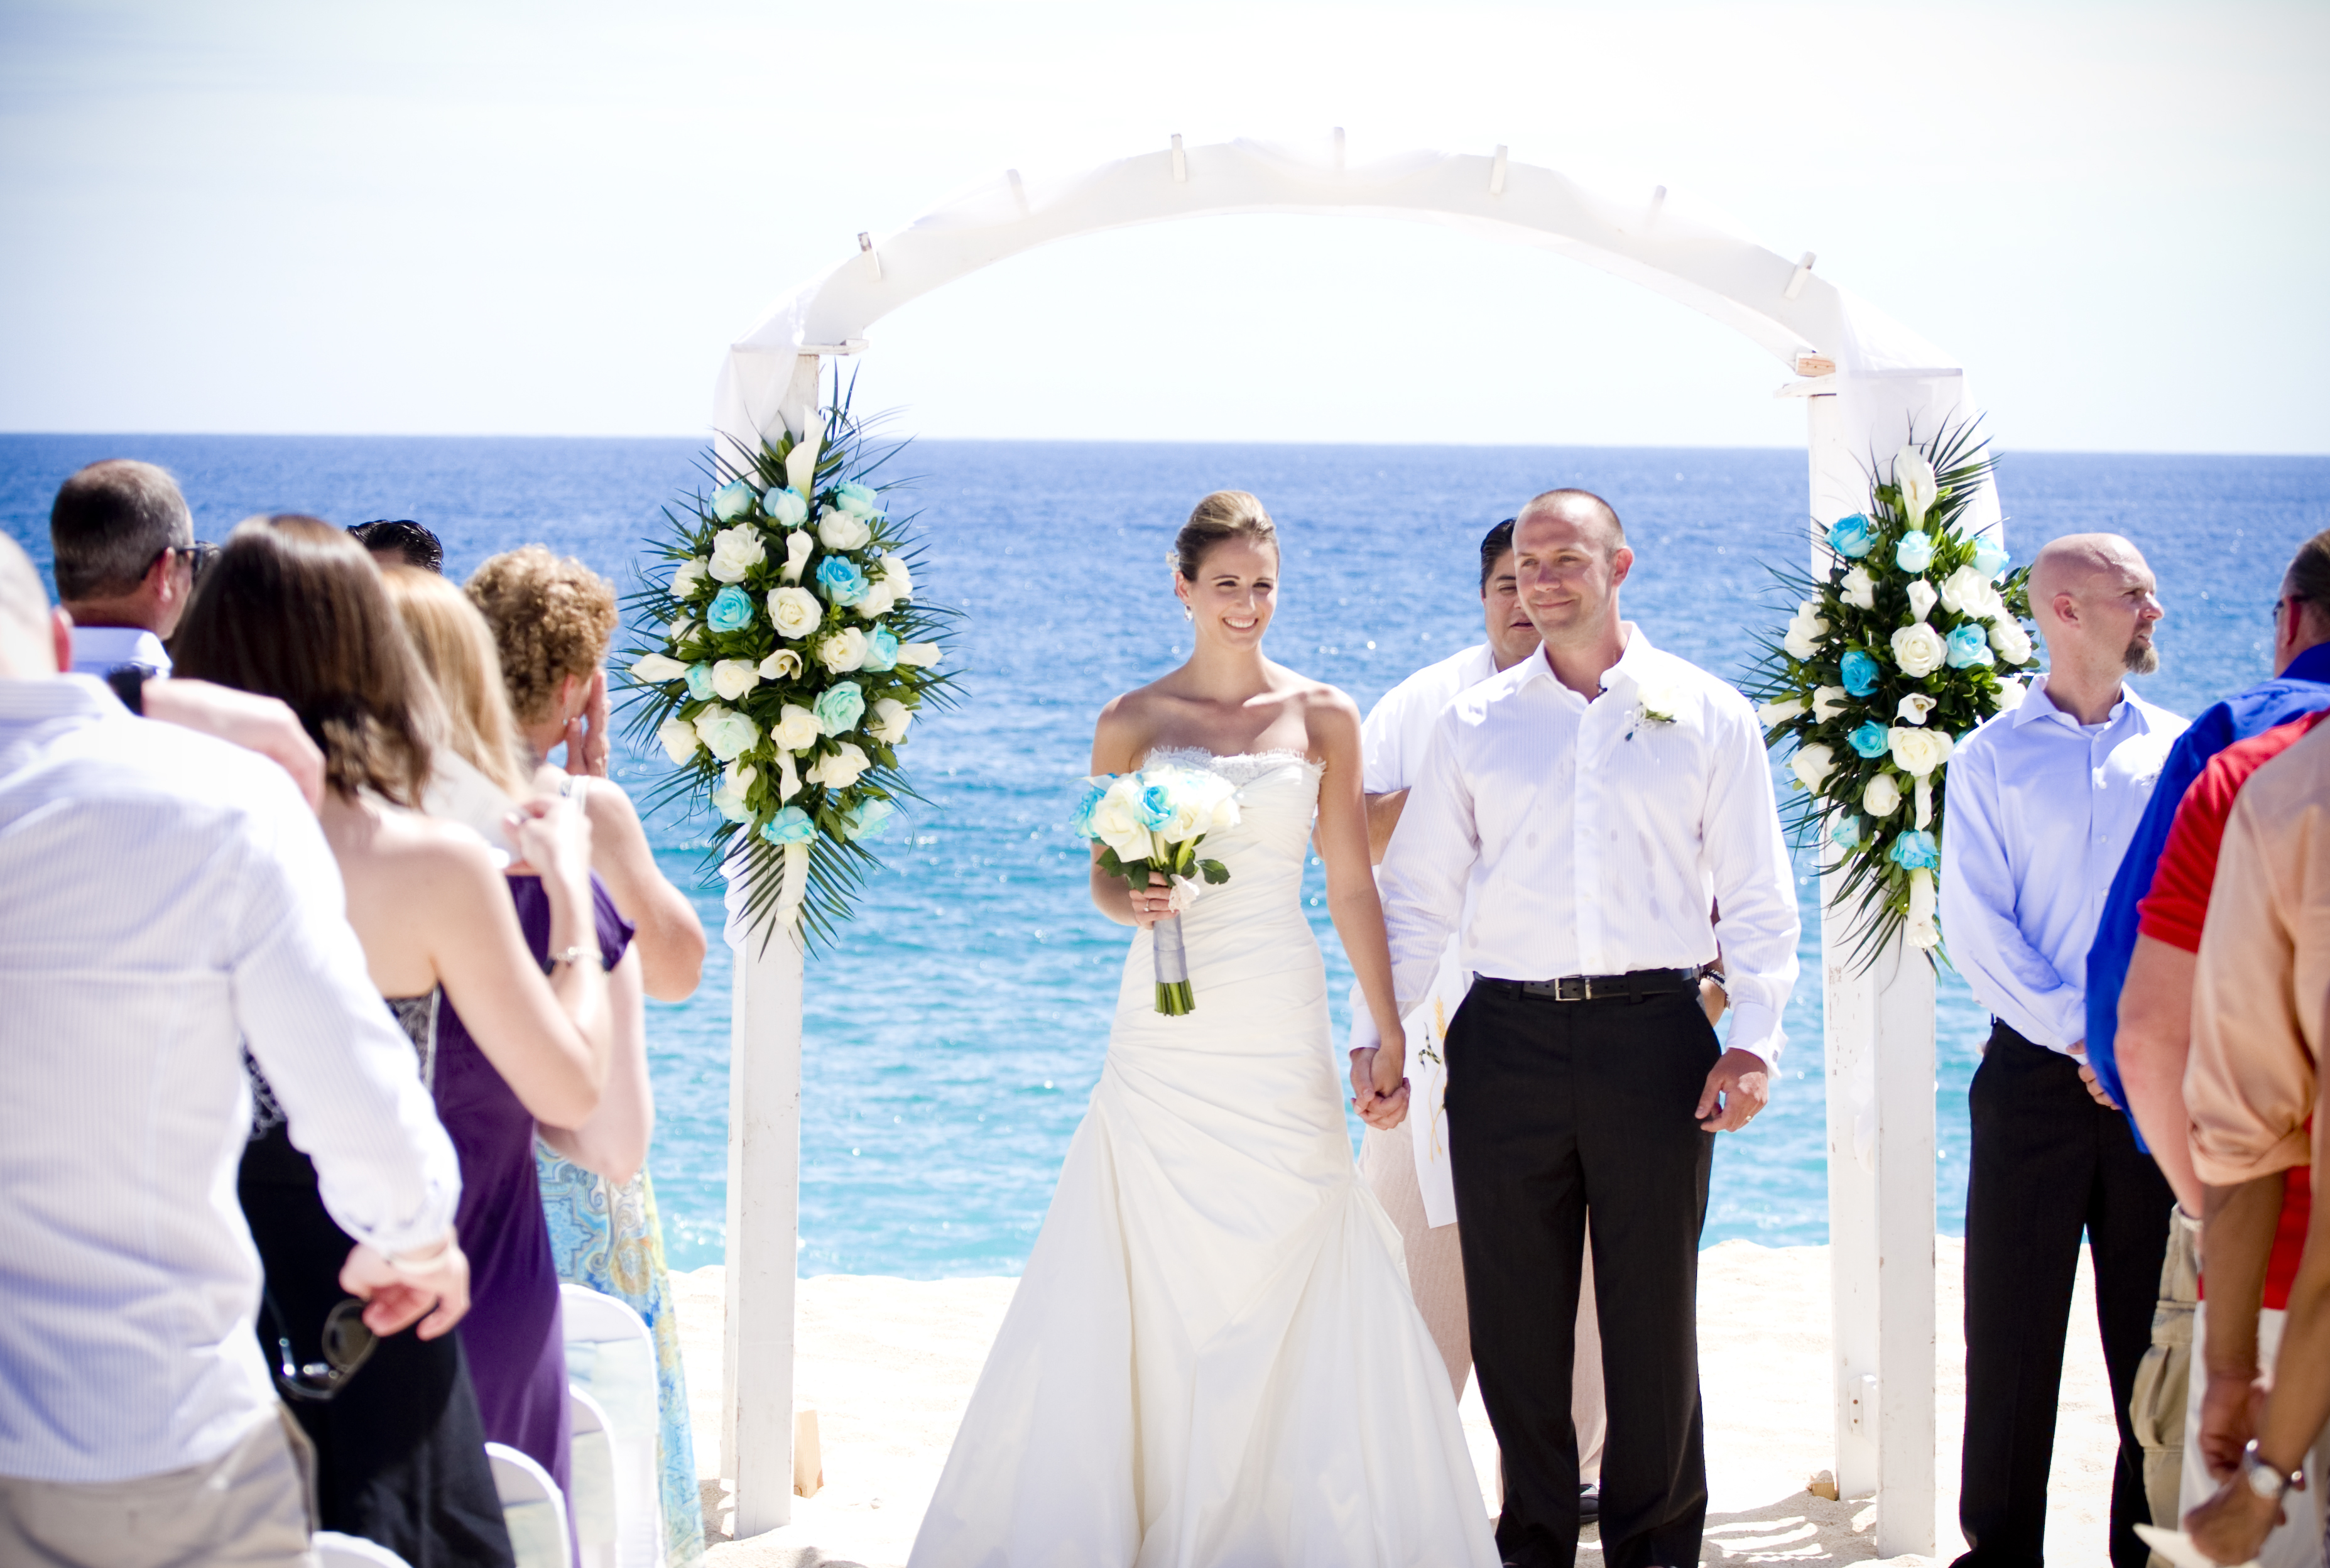 Ceremony, Flowers & Decor, Wedding Dresses, Beach Wedding Dresses, Destinations, Fashion, dress, Mexico, Beach, Ceremony Flowers, Flowers, Beach Wedding Flowers & Decor, Cabo, Flower Wedding Dresses